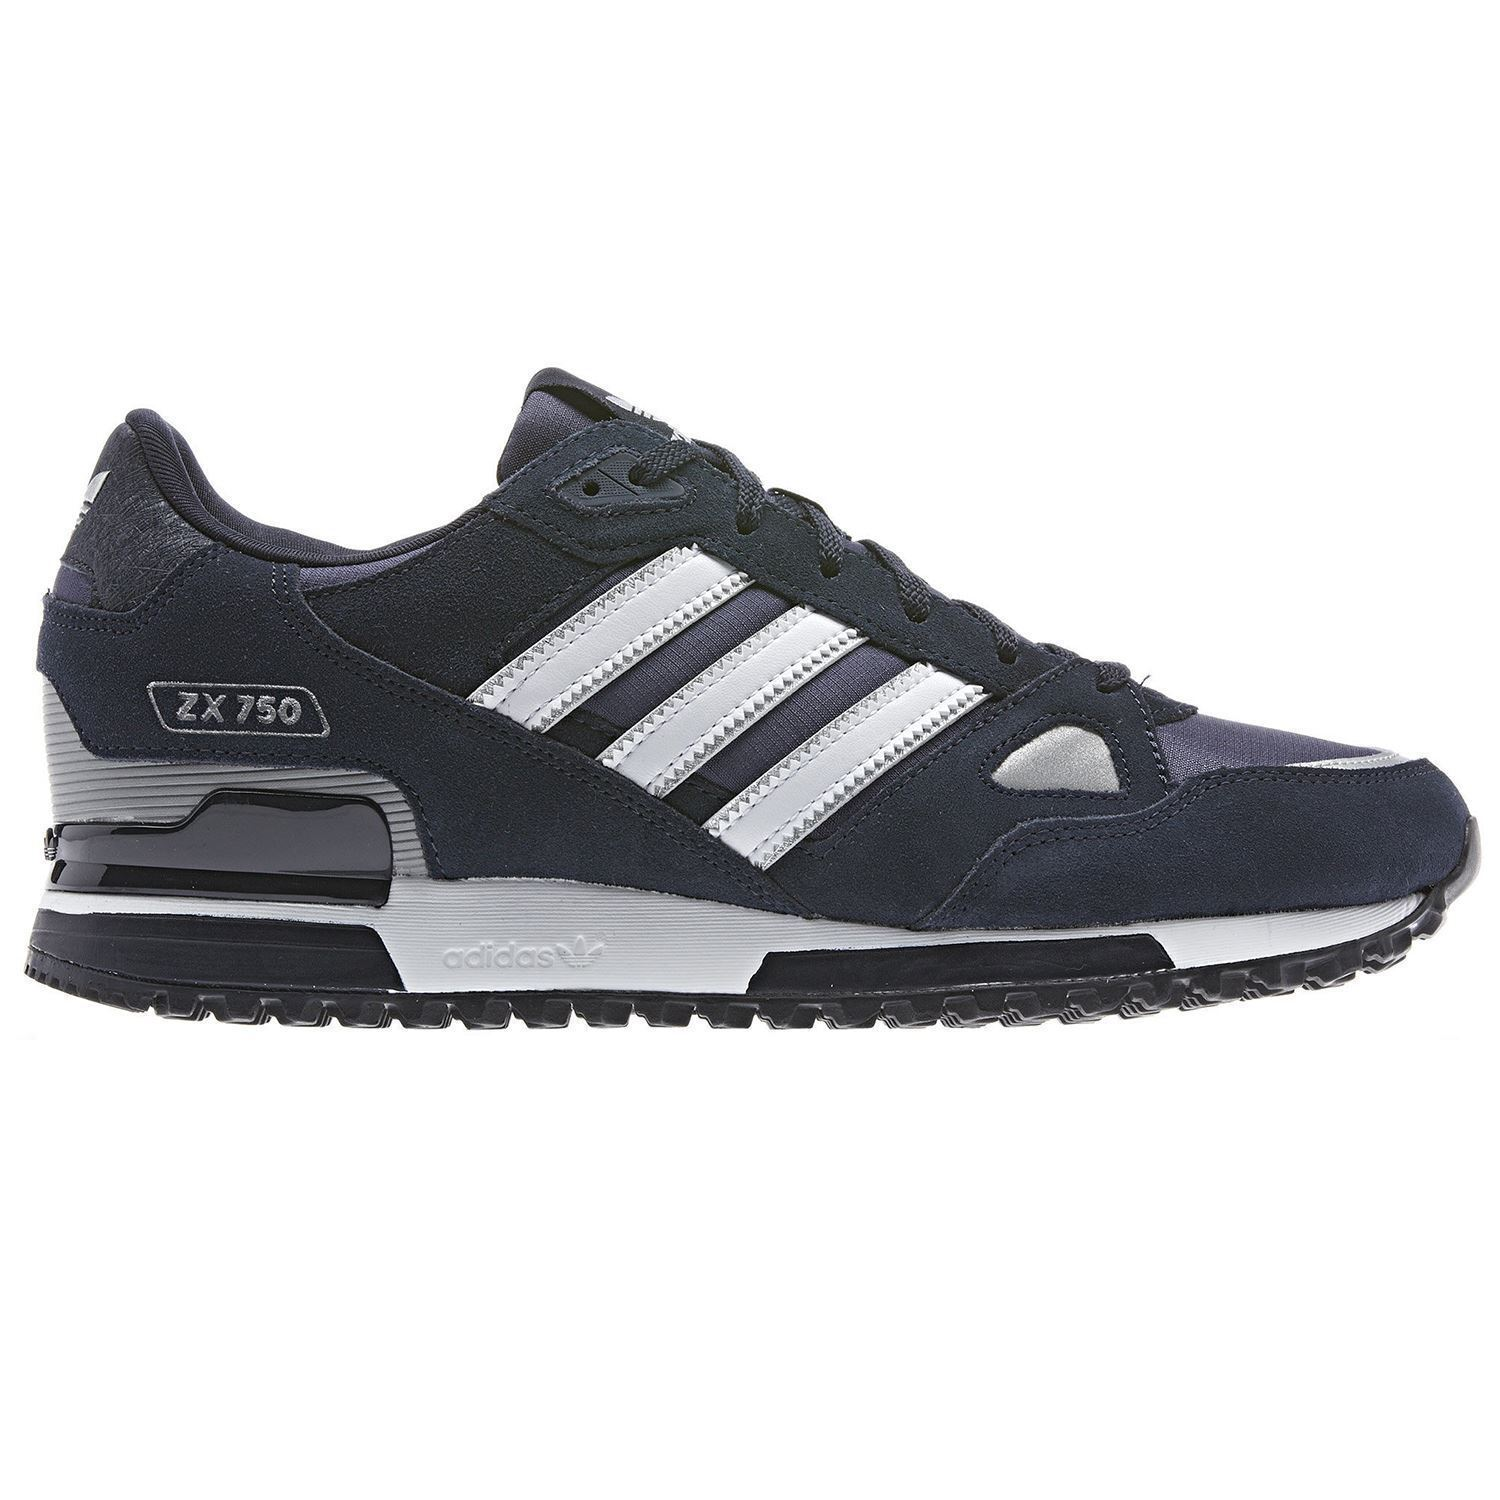 competitive price daaea aae2f Details about ✅ 24Hr Delivery✅Adidas Originals ZX750 Men's Suede Trainers  Sports Running Shoes